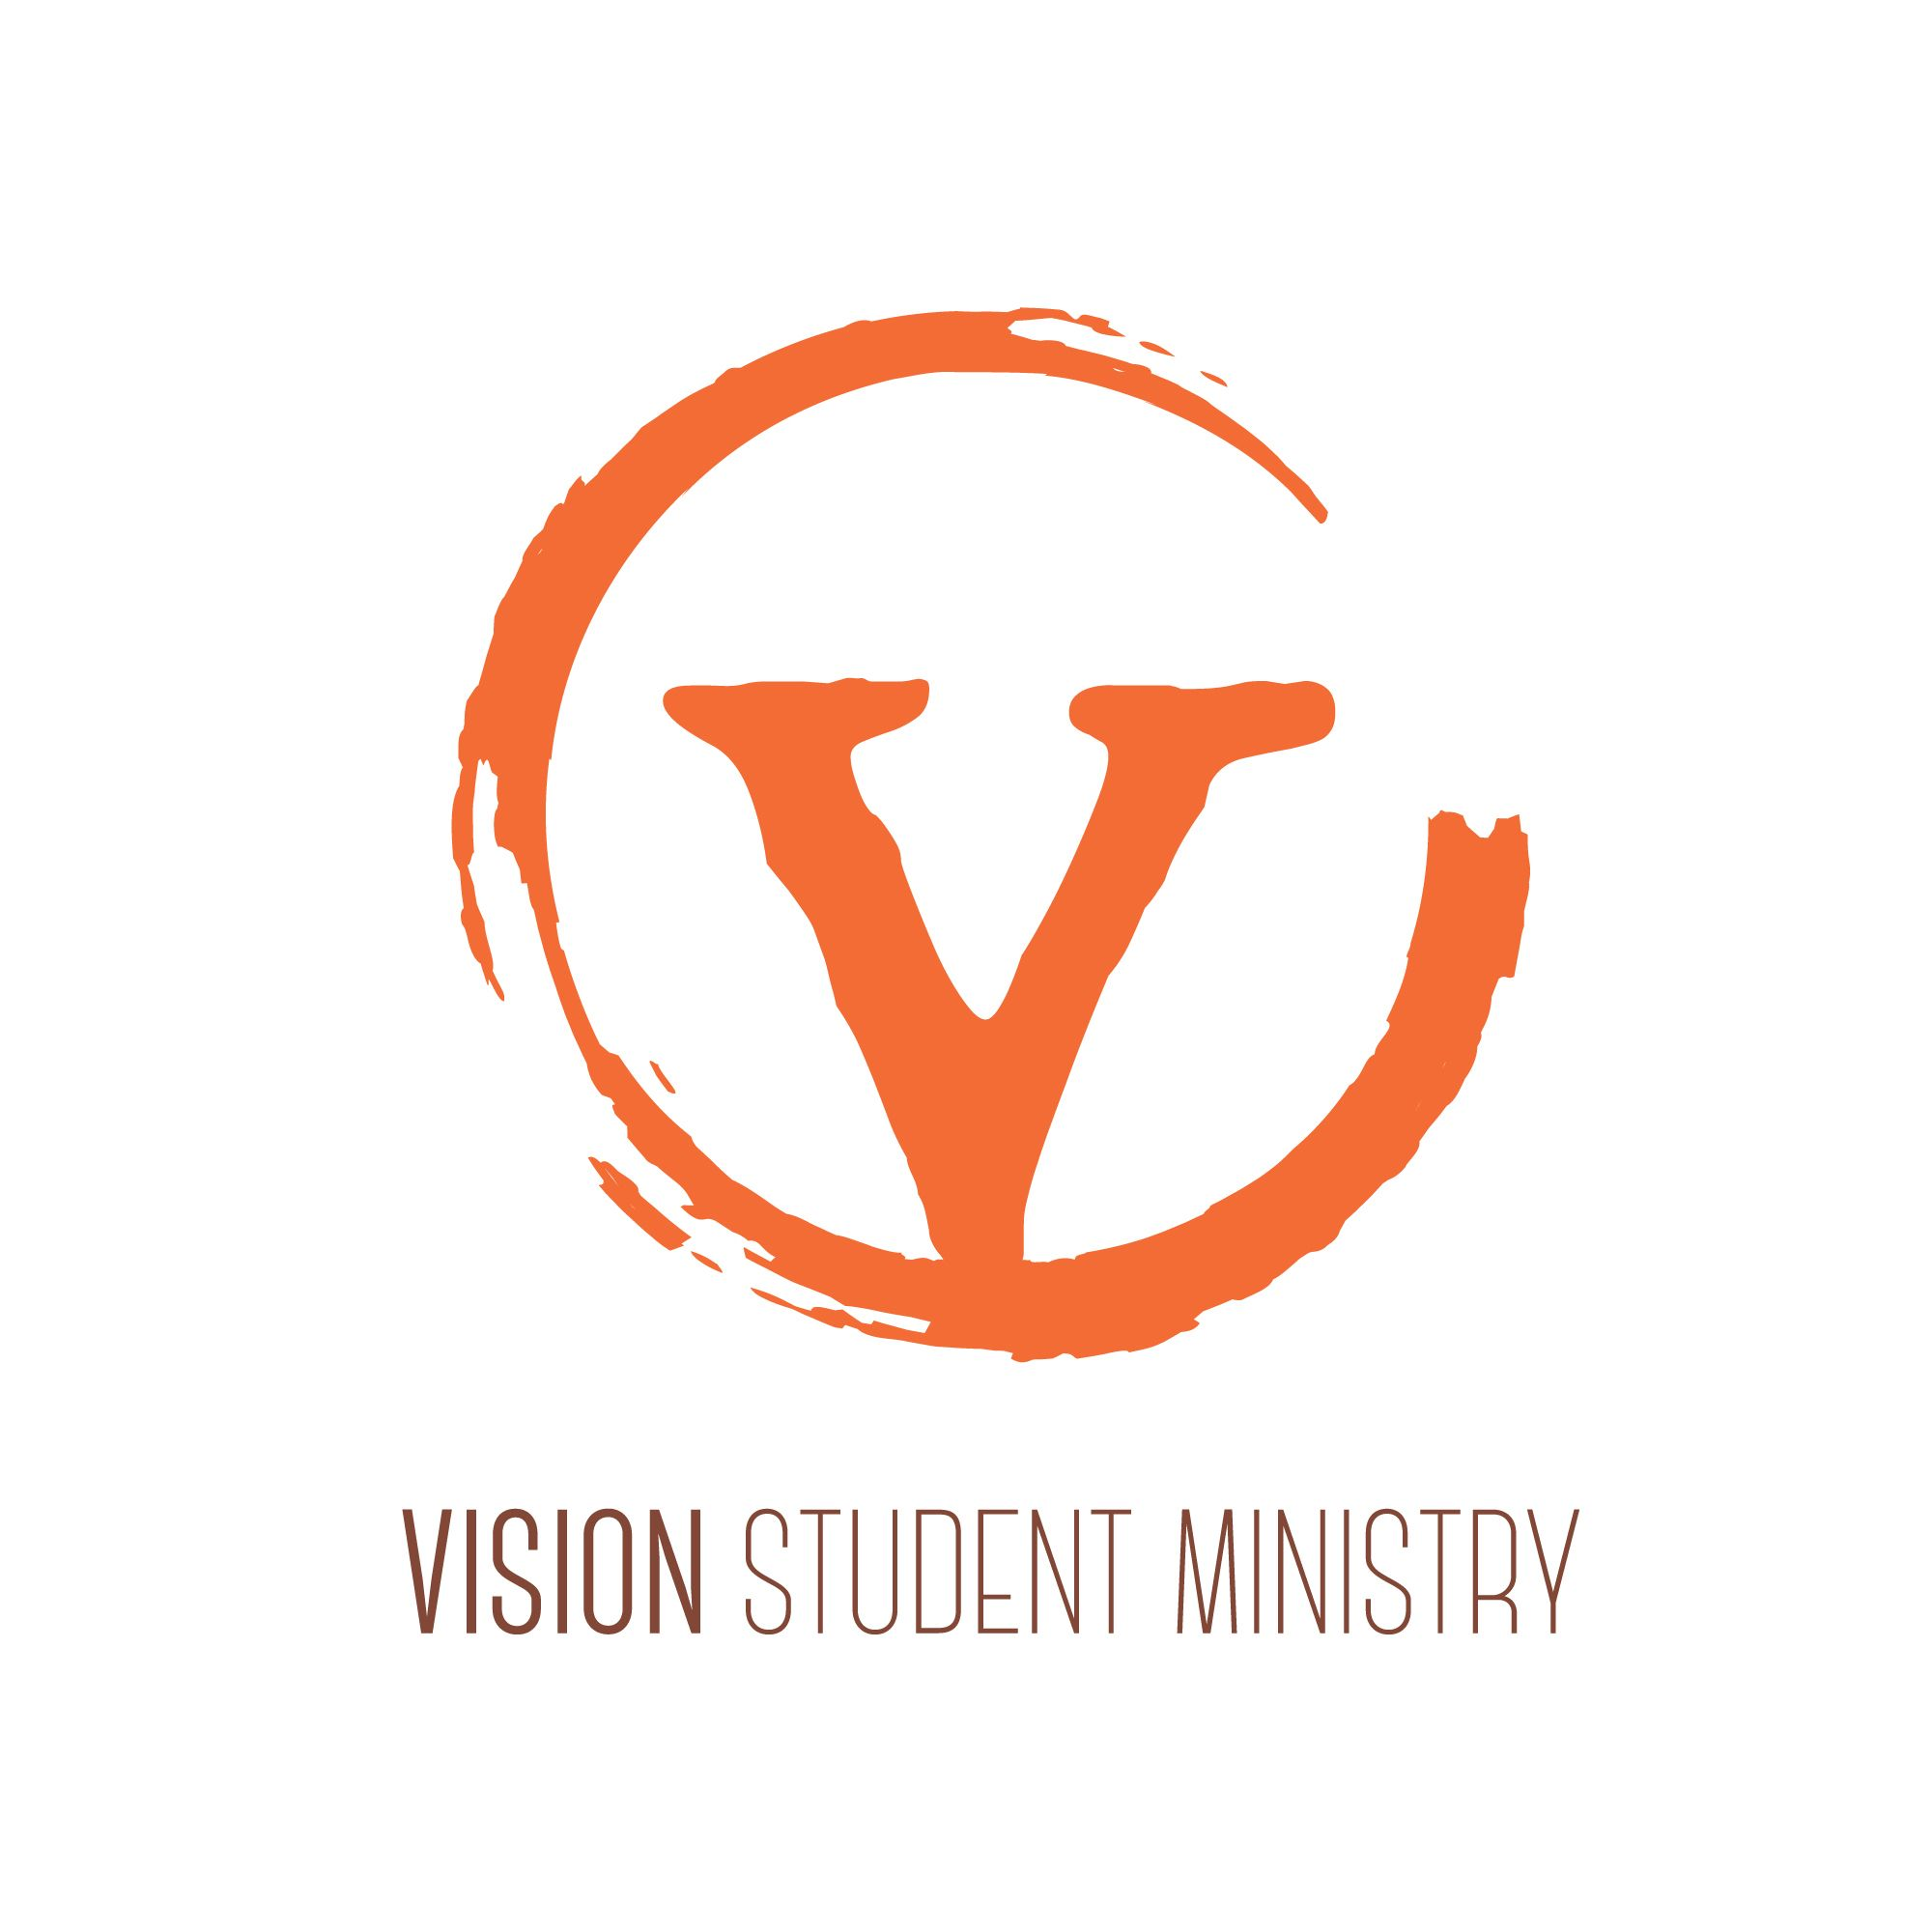 Vision Student Ministry - Youth Group Logos | Youth logo ...